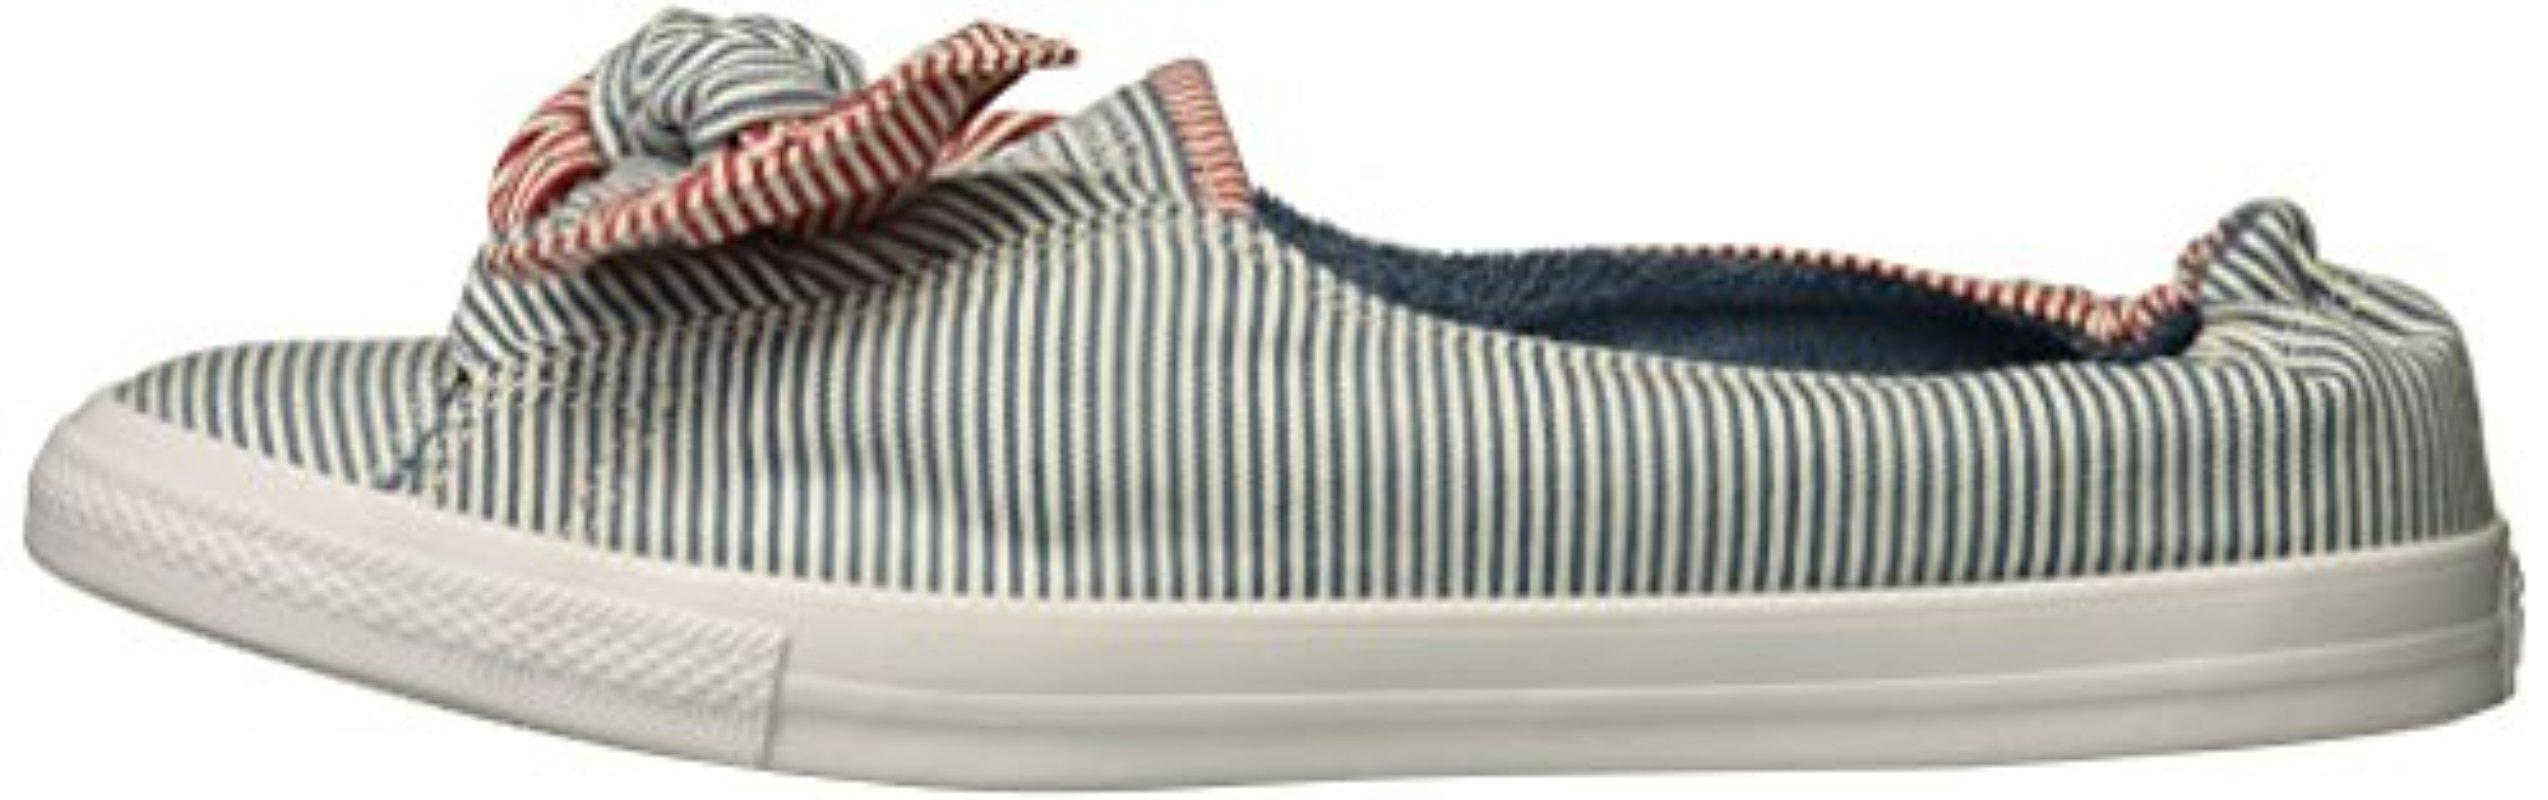 Converse Knot Striped Chambray Slip On